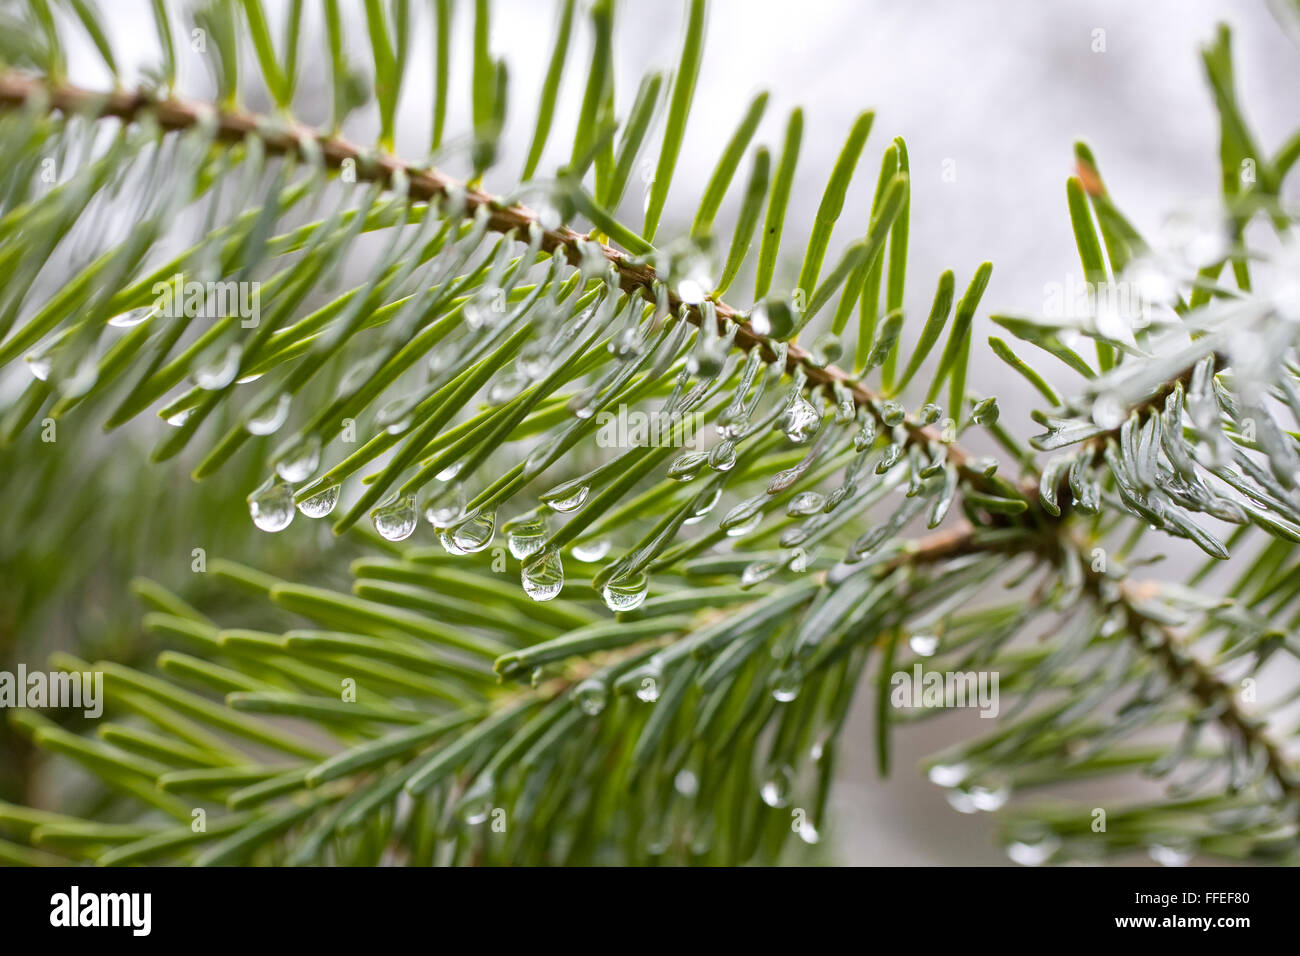 Europe, Germany, waterdrops on fir needles. - Stock Image